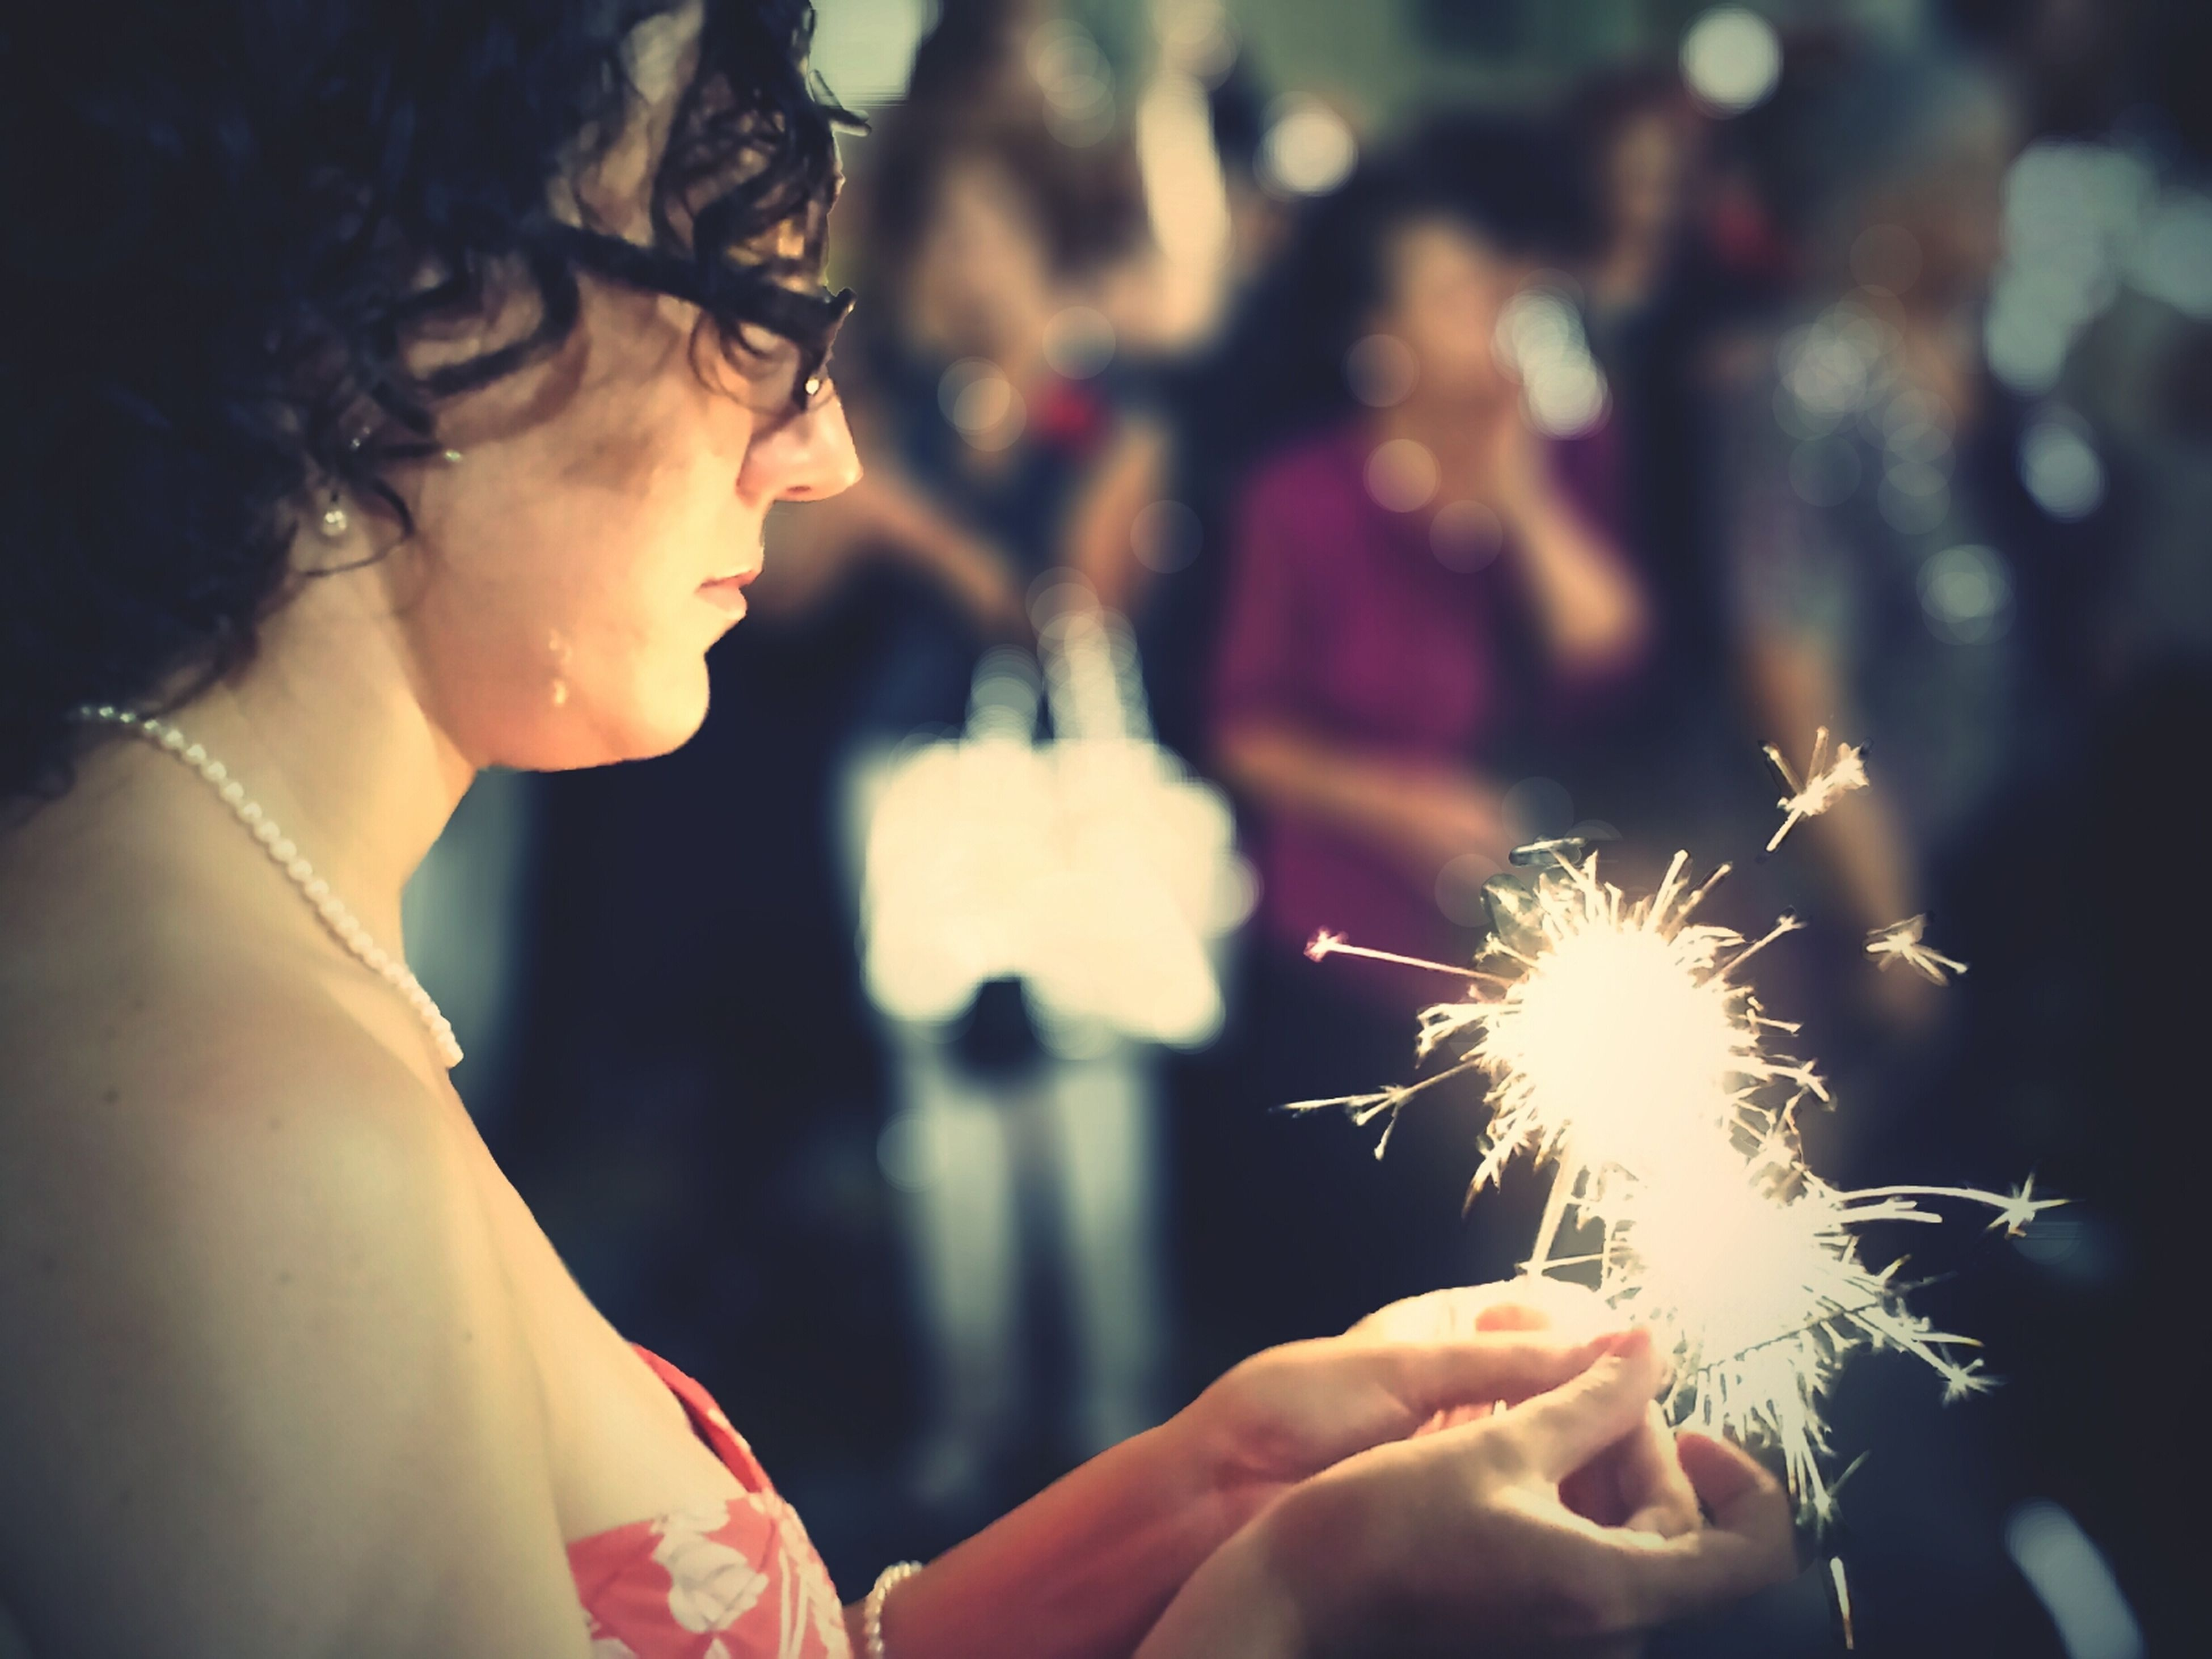 person, holding, lifestyles, part of, celebration, leisure activity, focus on foreground, arts culture and entertainment, illuminated, night, cropped, fire - natural phenomenon, event, burning, men, close-up